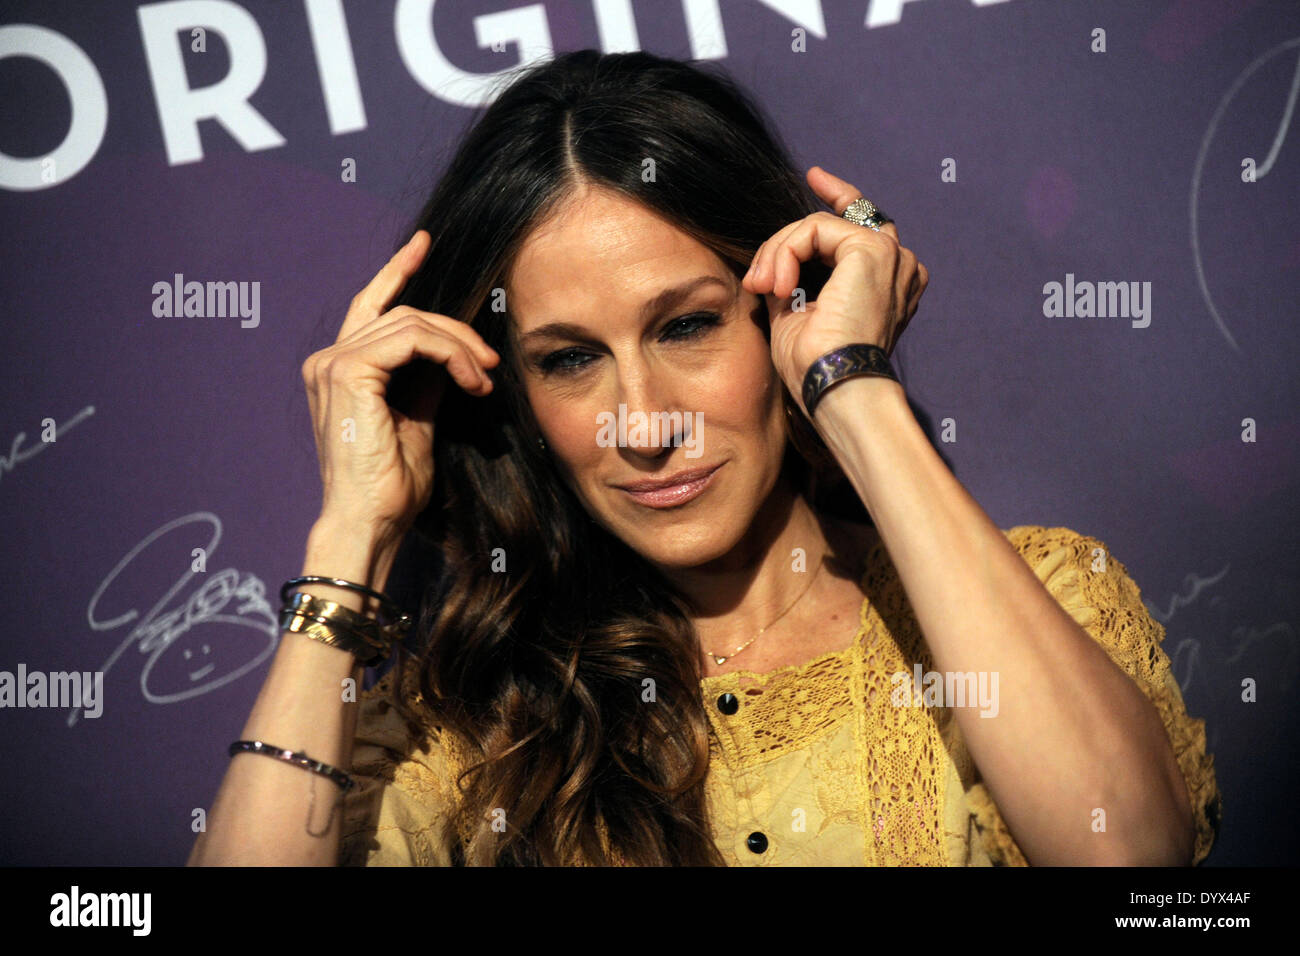 New York, NY, USA. Apr 25, 2014. Sarah Jessica Parker assiste à la variété Power of Women : Photo Stock